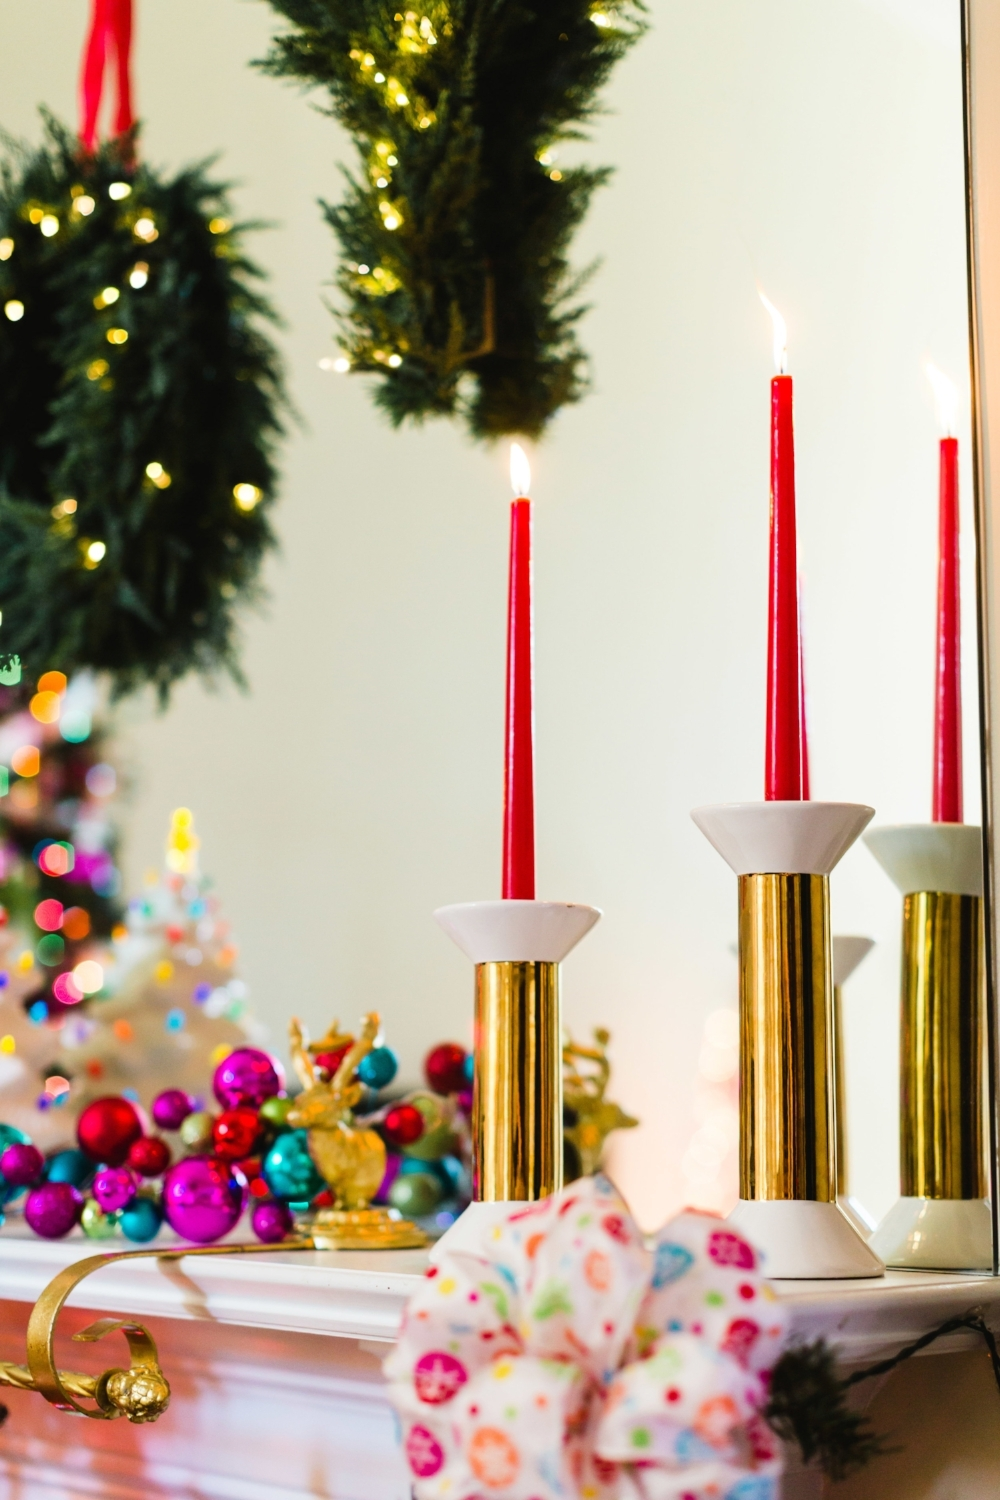 These candle holders were an At Home clearance find and I can't ever get enough of taper candles. They are so pretty!